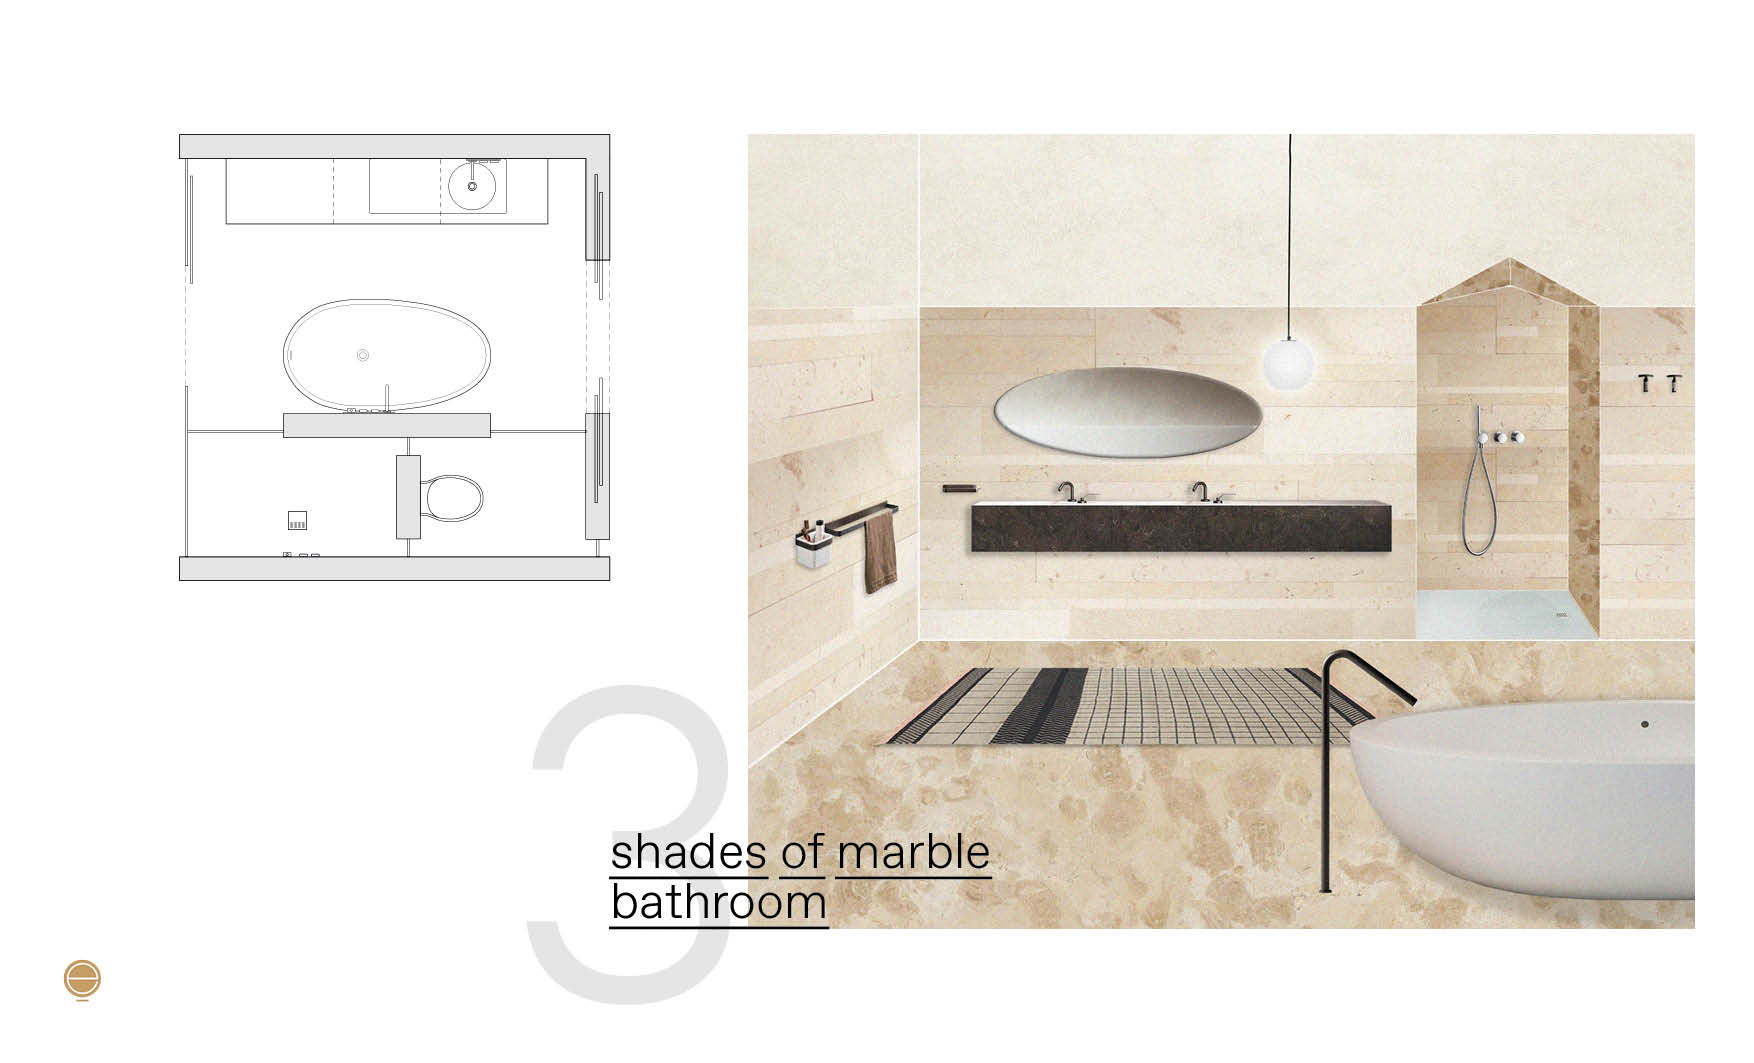 Modern Italian bathroom perspective in shades of marble version and plan design by Esperiri Milano